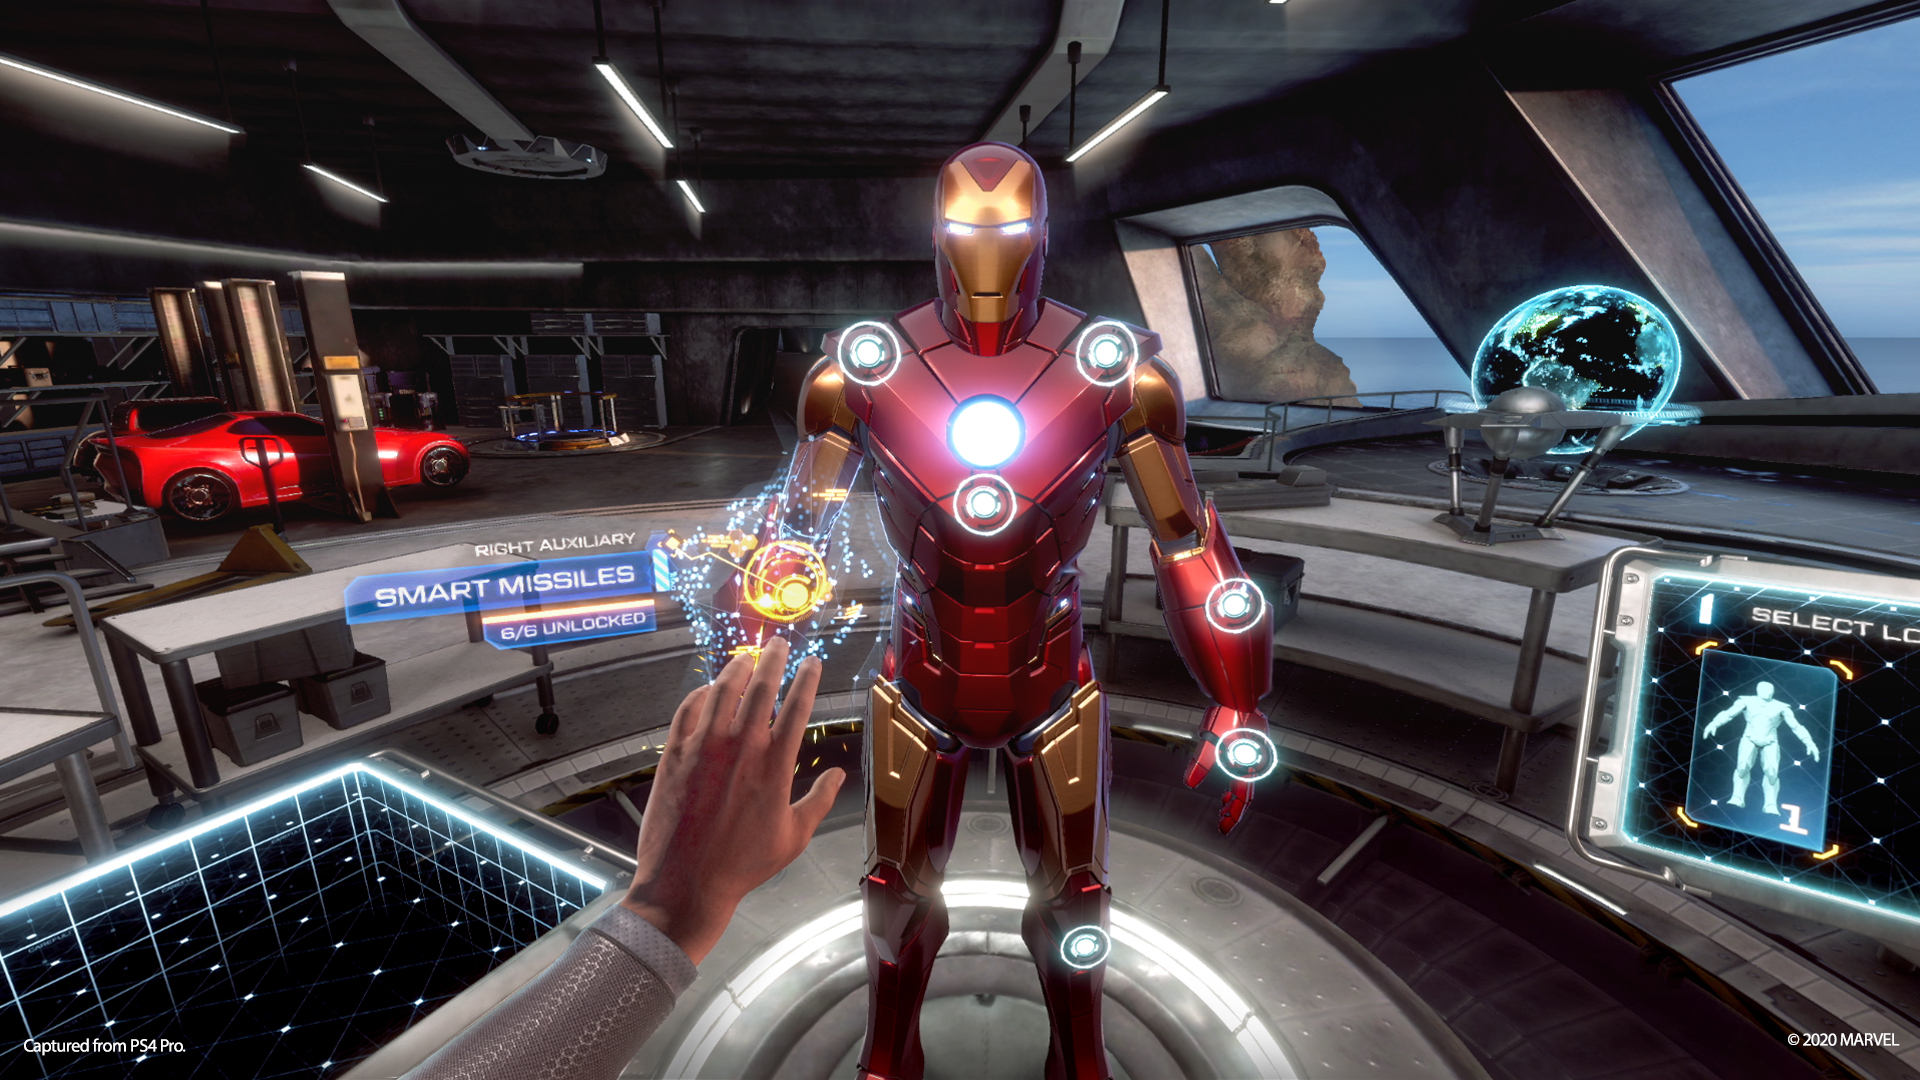 Marvel's Iron Man VR suit station